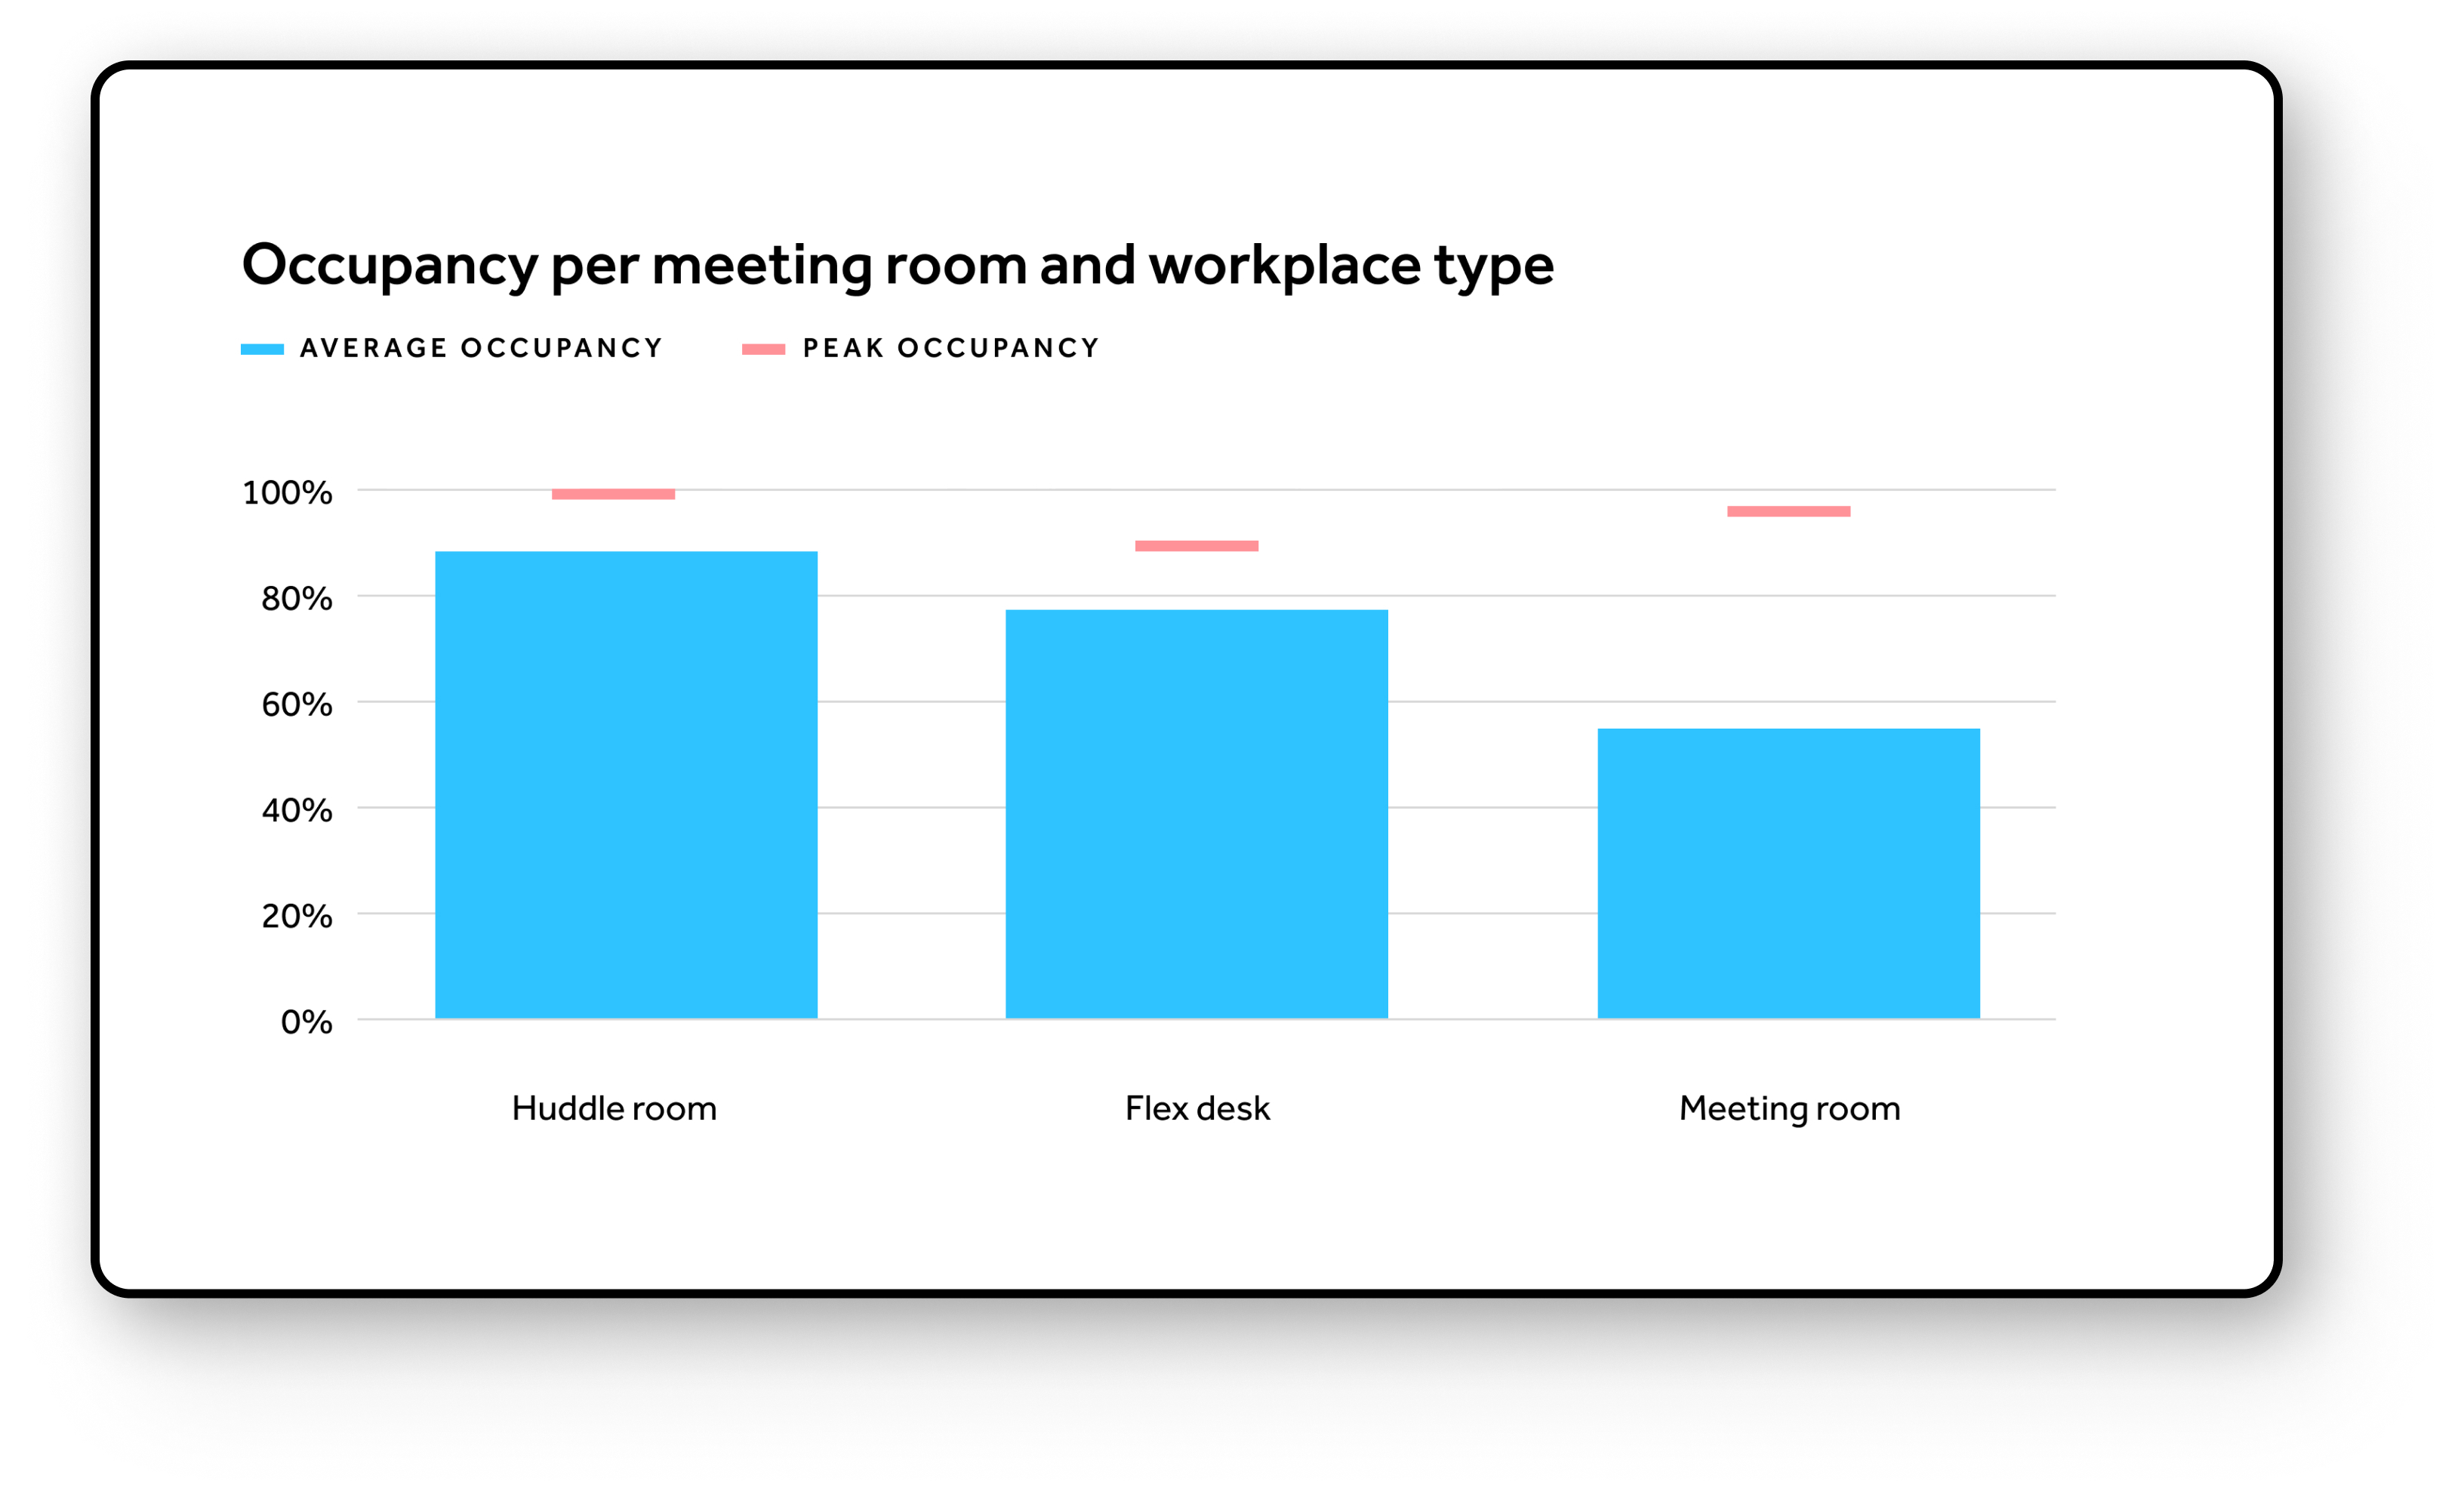 Occupancy per meeting room